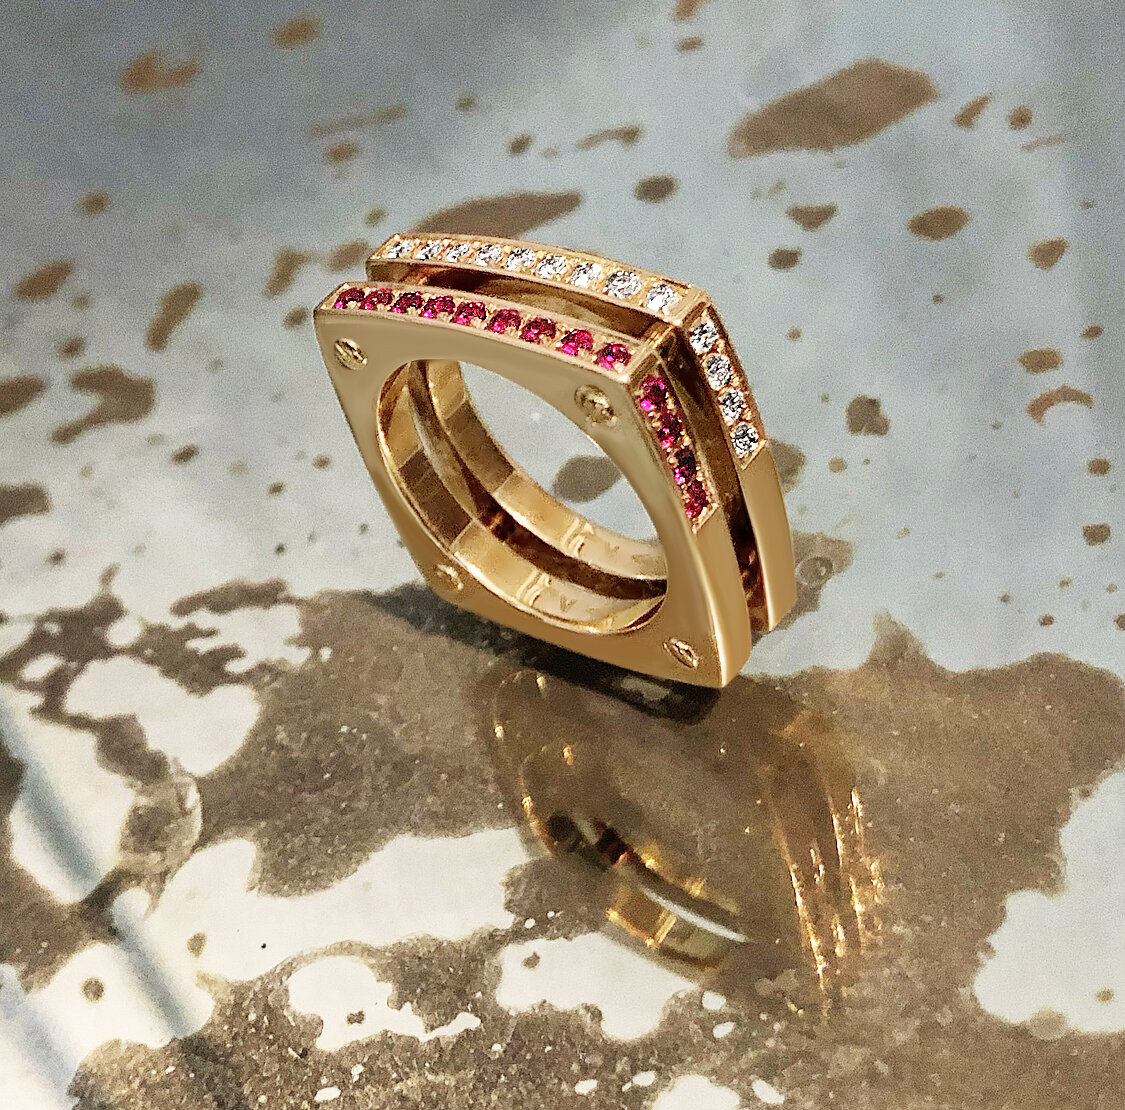 Matthia's & Claire 18K Gold, Diamond and Ruby Double Cube Ring, $6,895